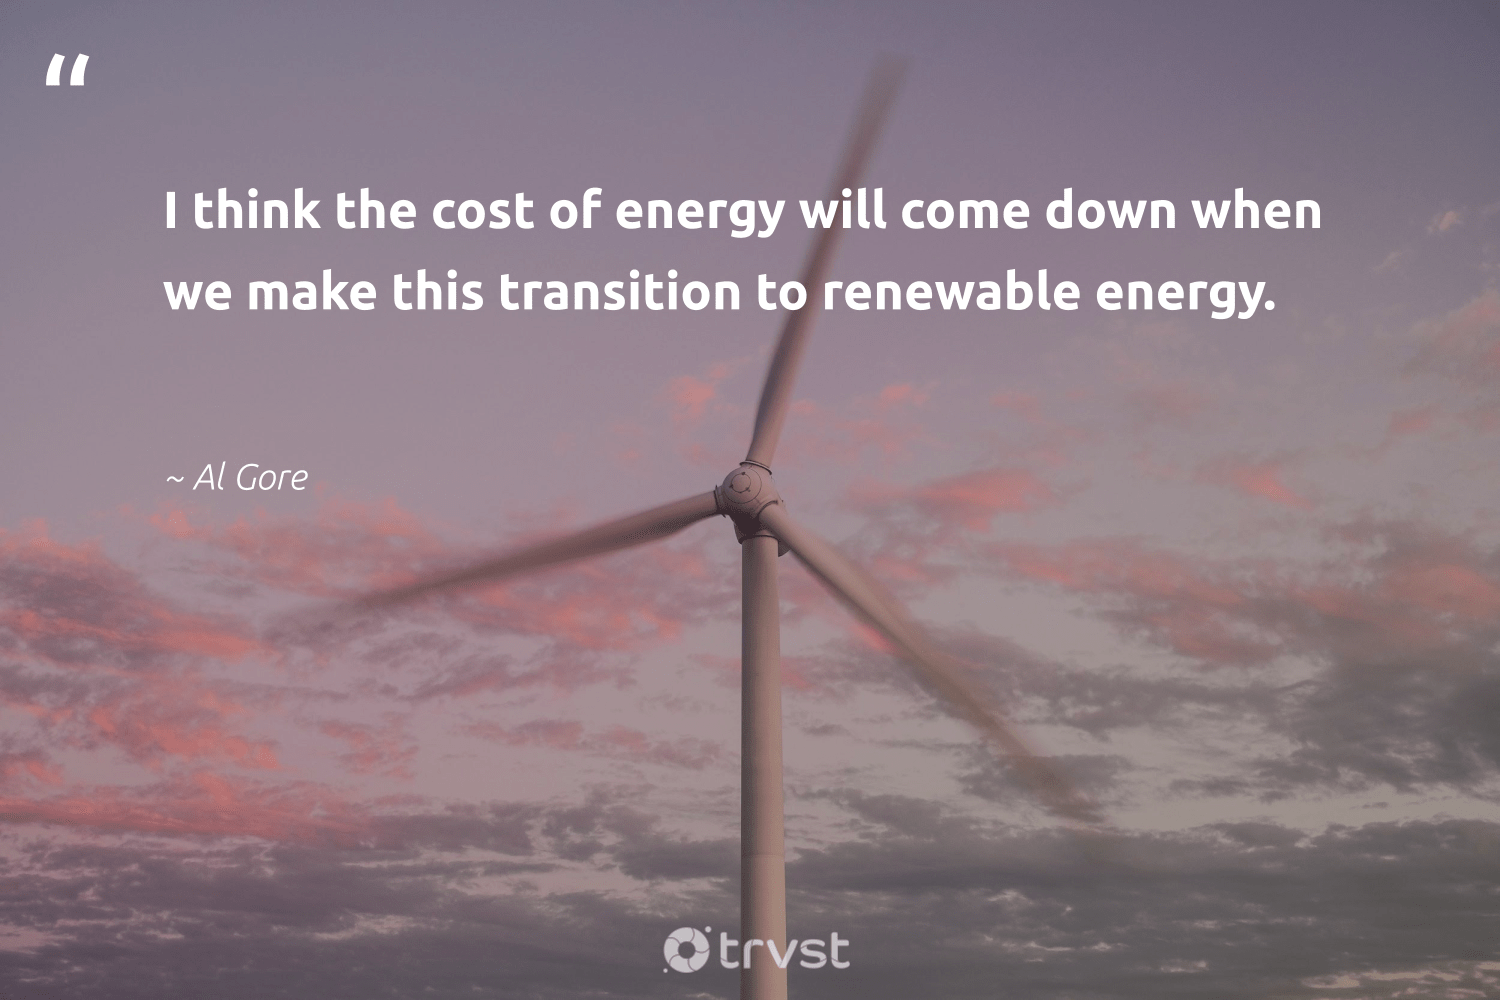 """""""I think the cost of energy will come down when we make this transition to renewable energy.""""  - Al Gore #trvst #quotes #renewableenergy #energy #renewable #cleanenergy #lowcarbon #sustainability #sustainable #takeaction #greenenergy #100percentrenewable"""